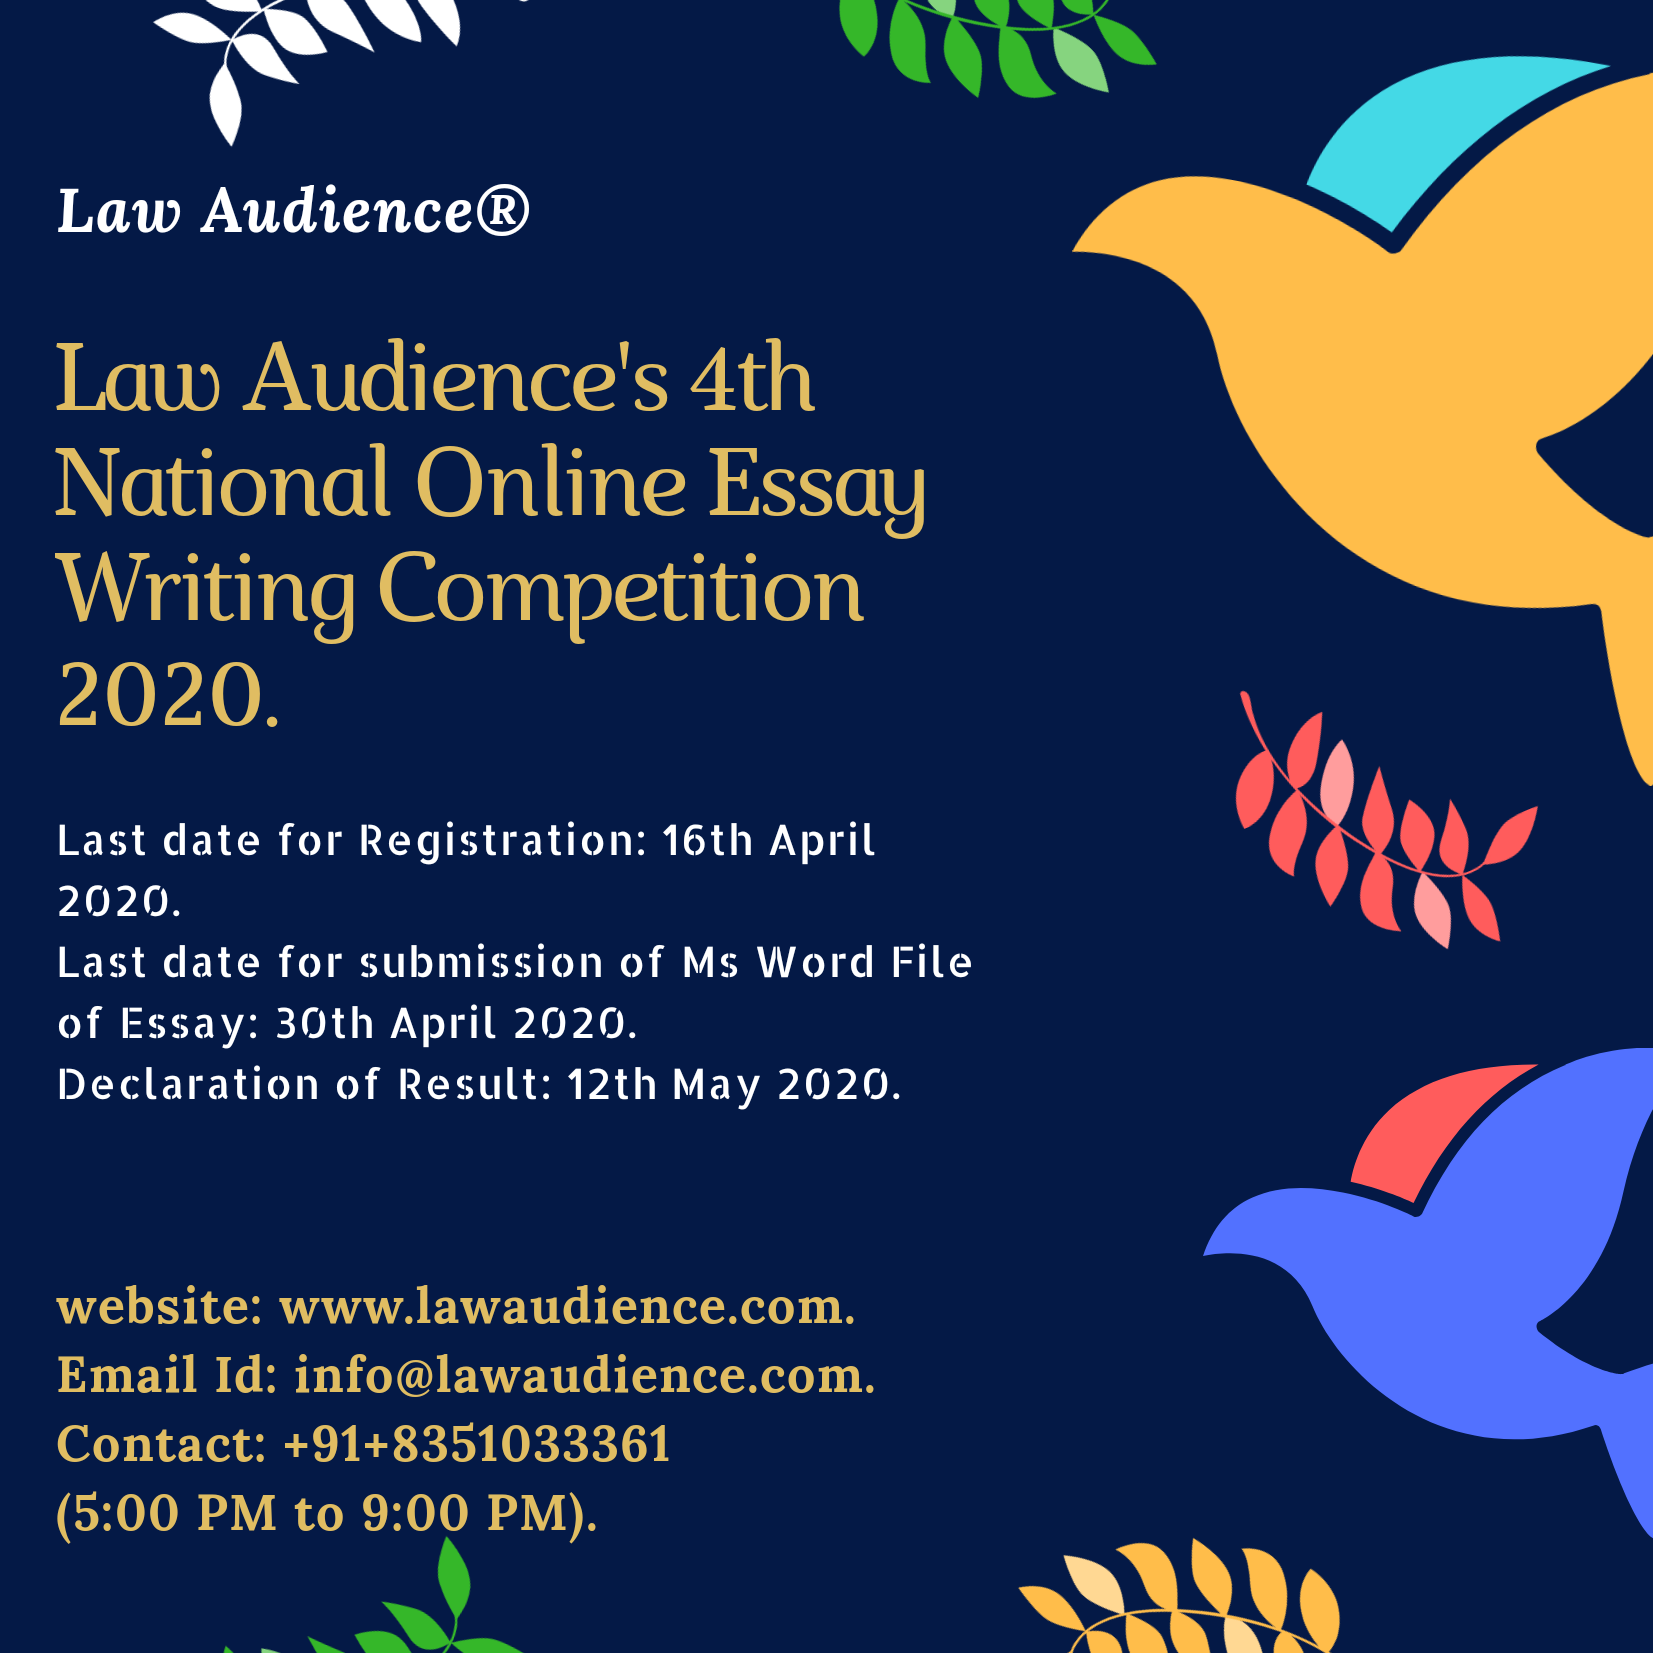 Law Audience's 4th National Online Essay Writing Competition 2020